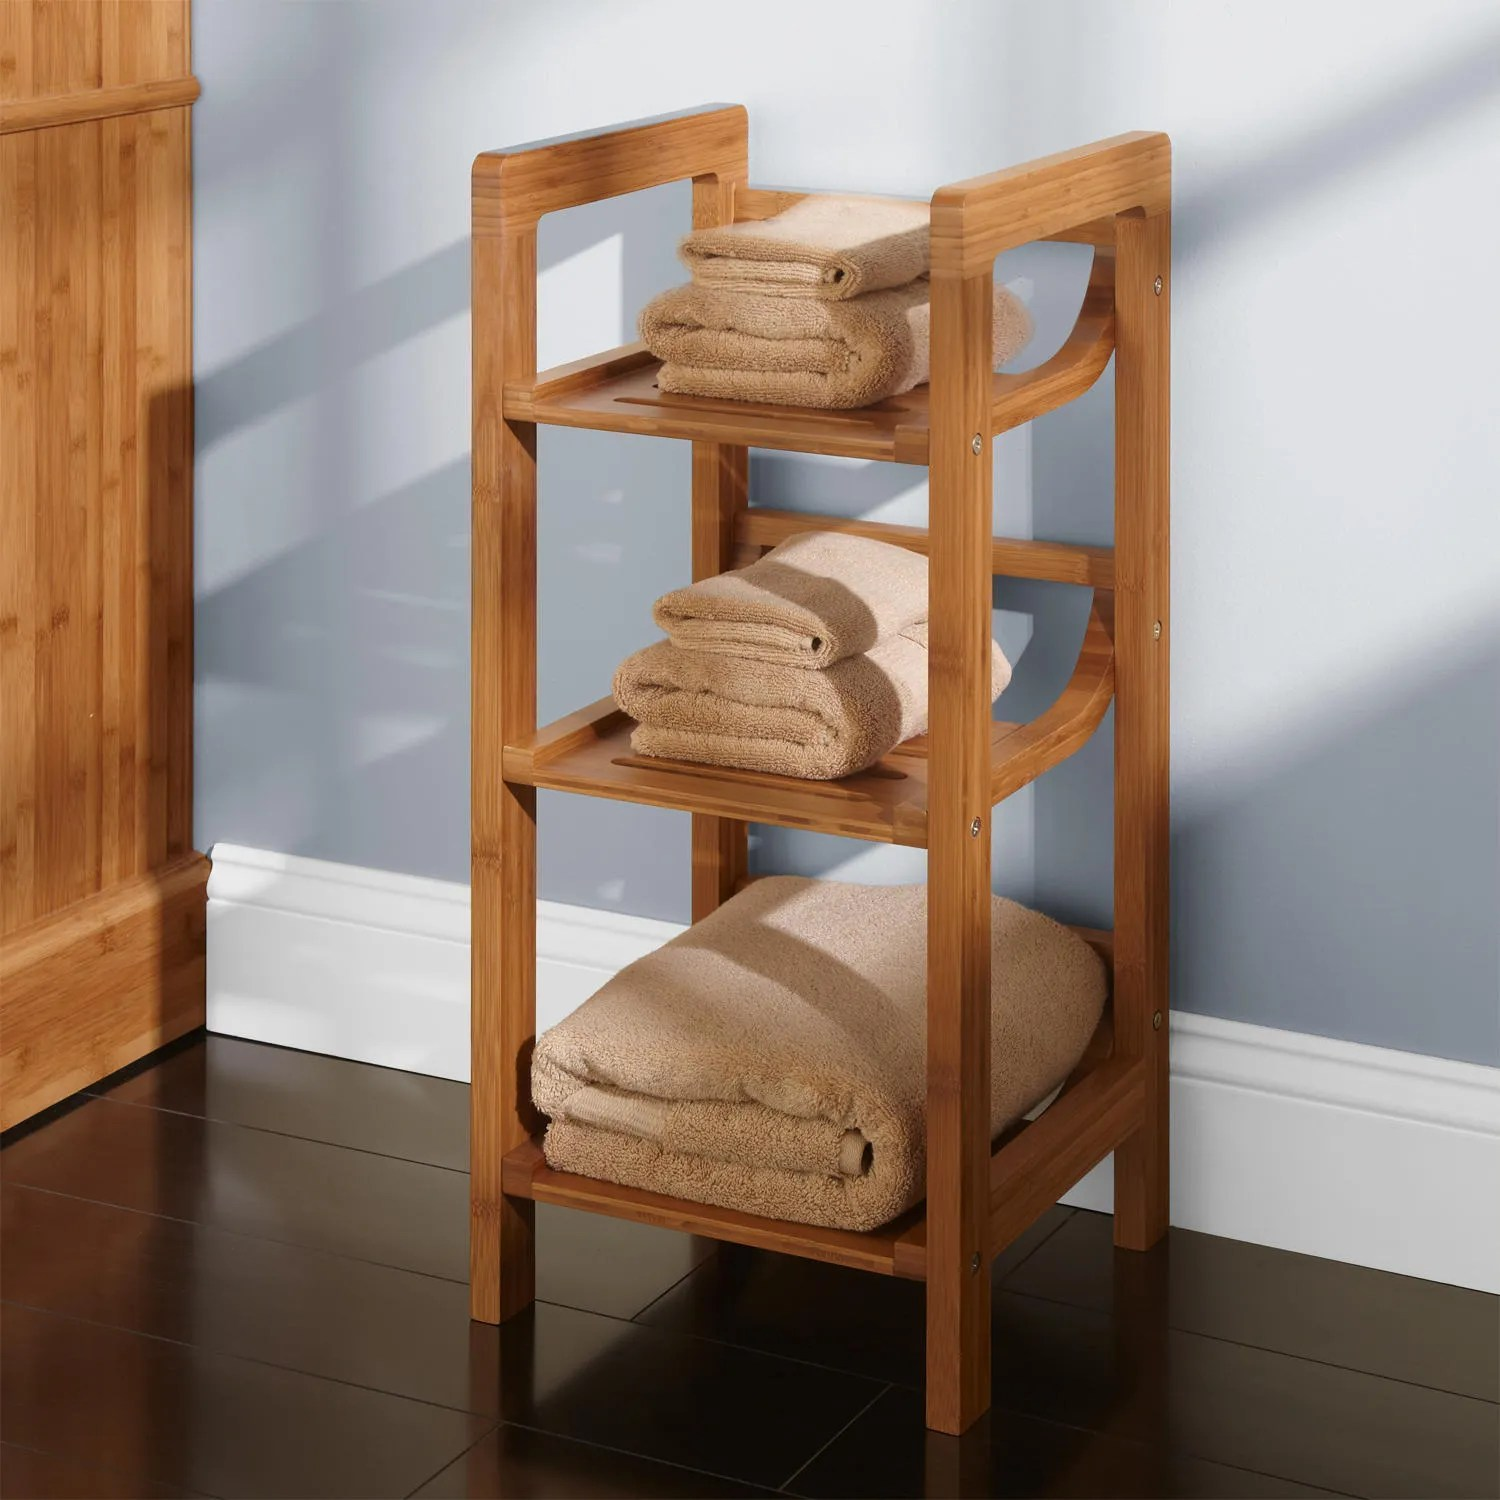 Handtuch Regal Bad Three Tier Bamboo Towel Shelf